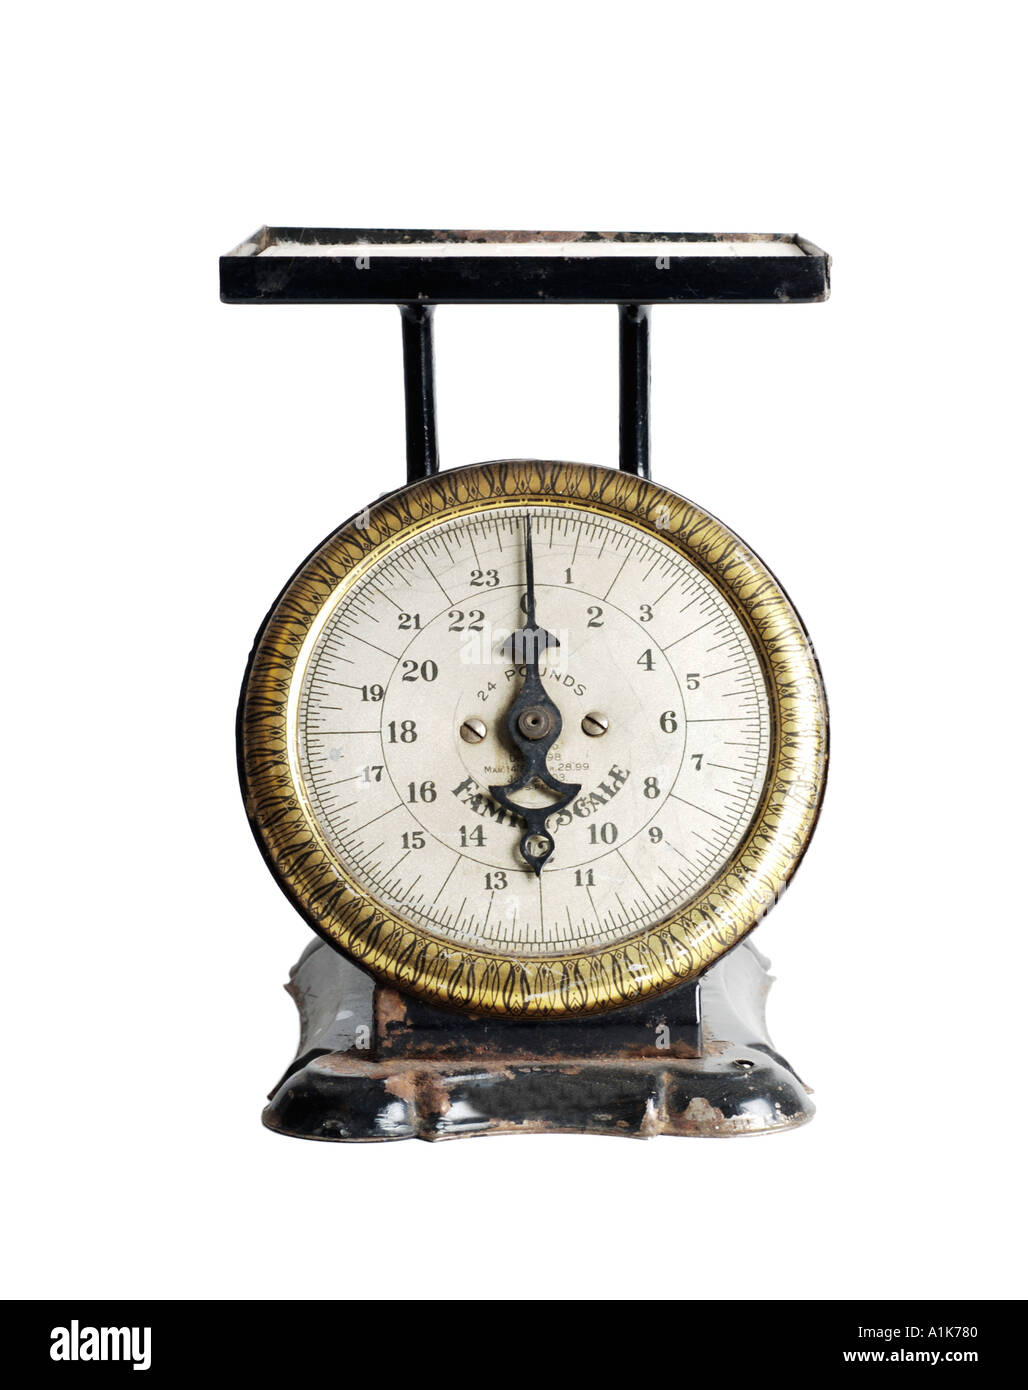 Old Scale - Stock Image